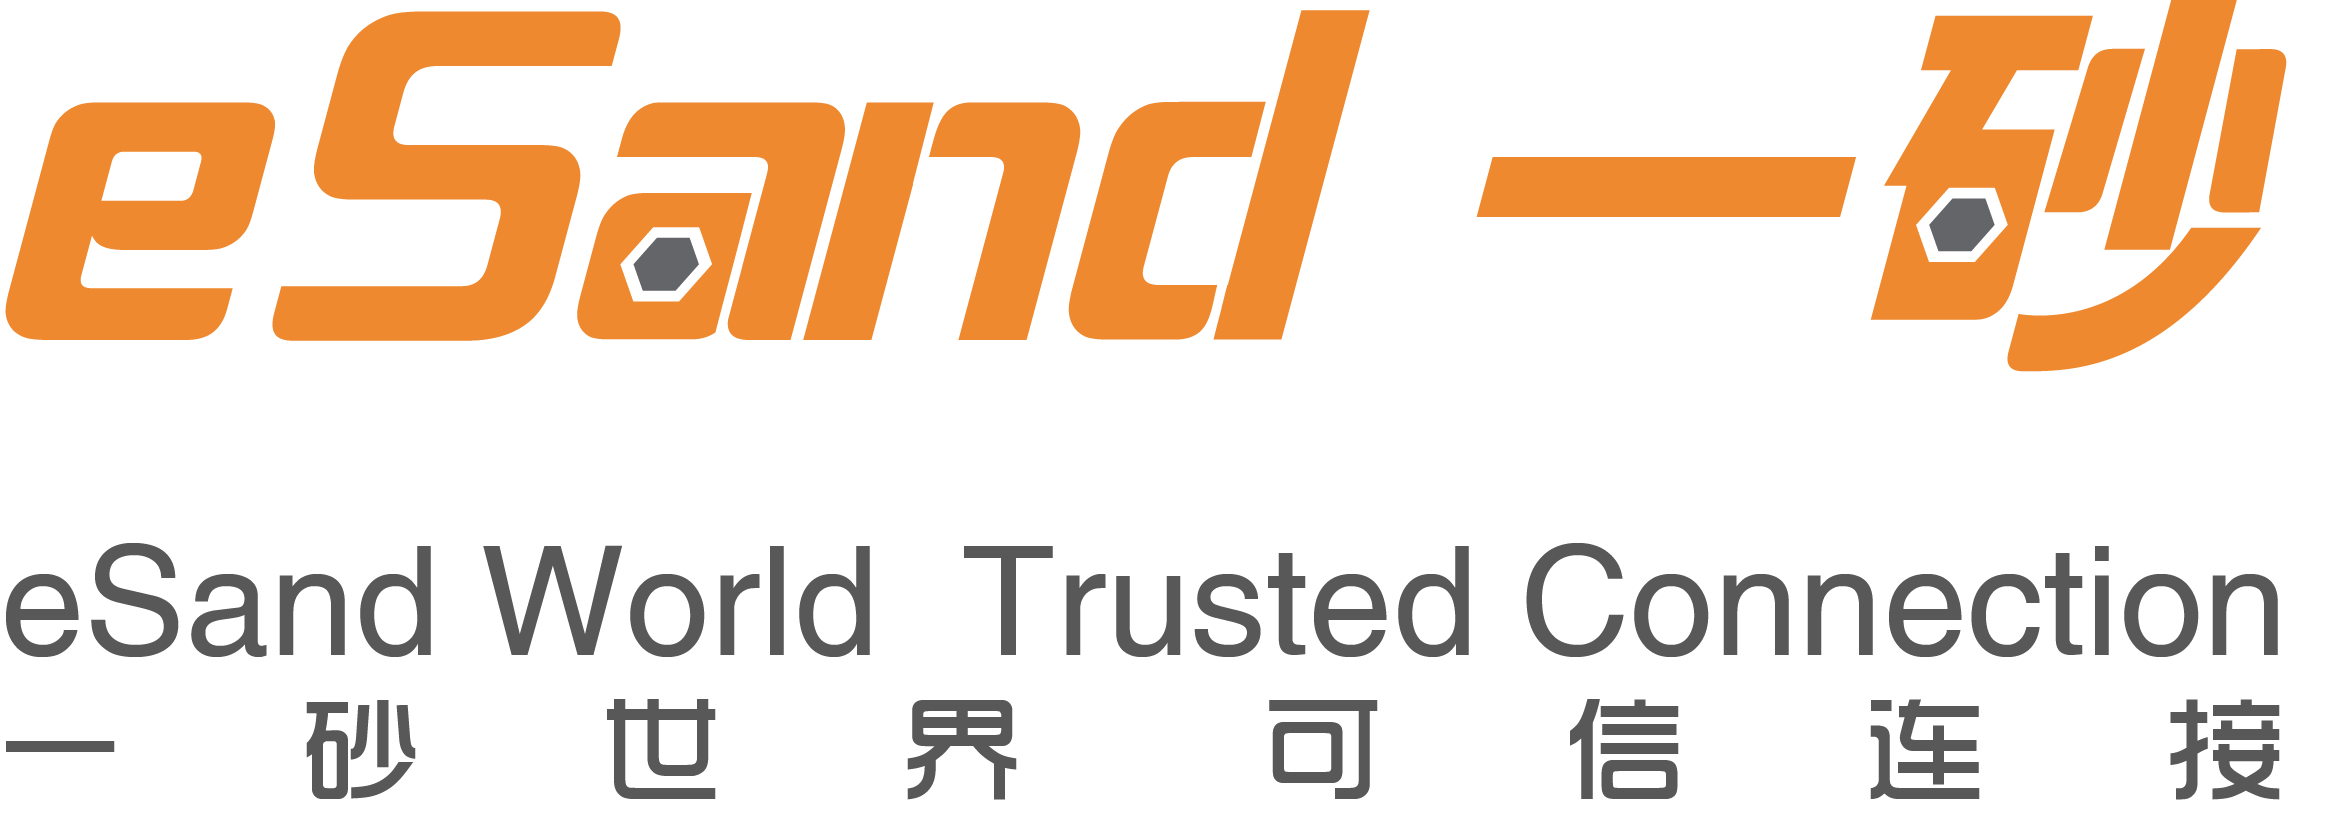 Beijing eSand Information Technology Co., Ltd. Logo